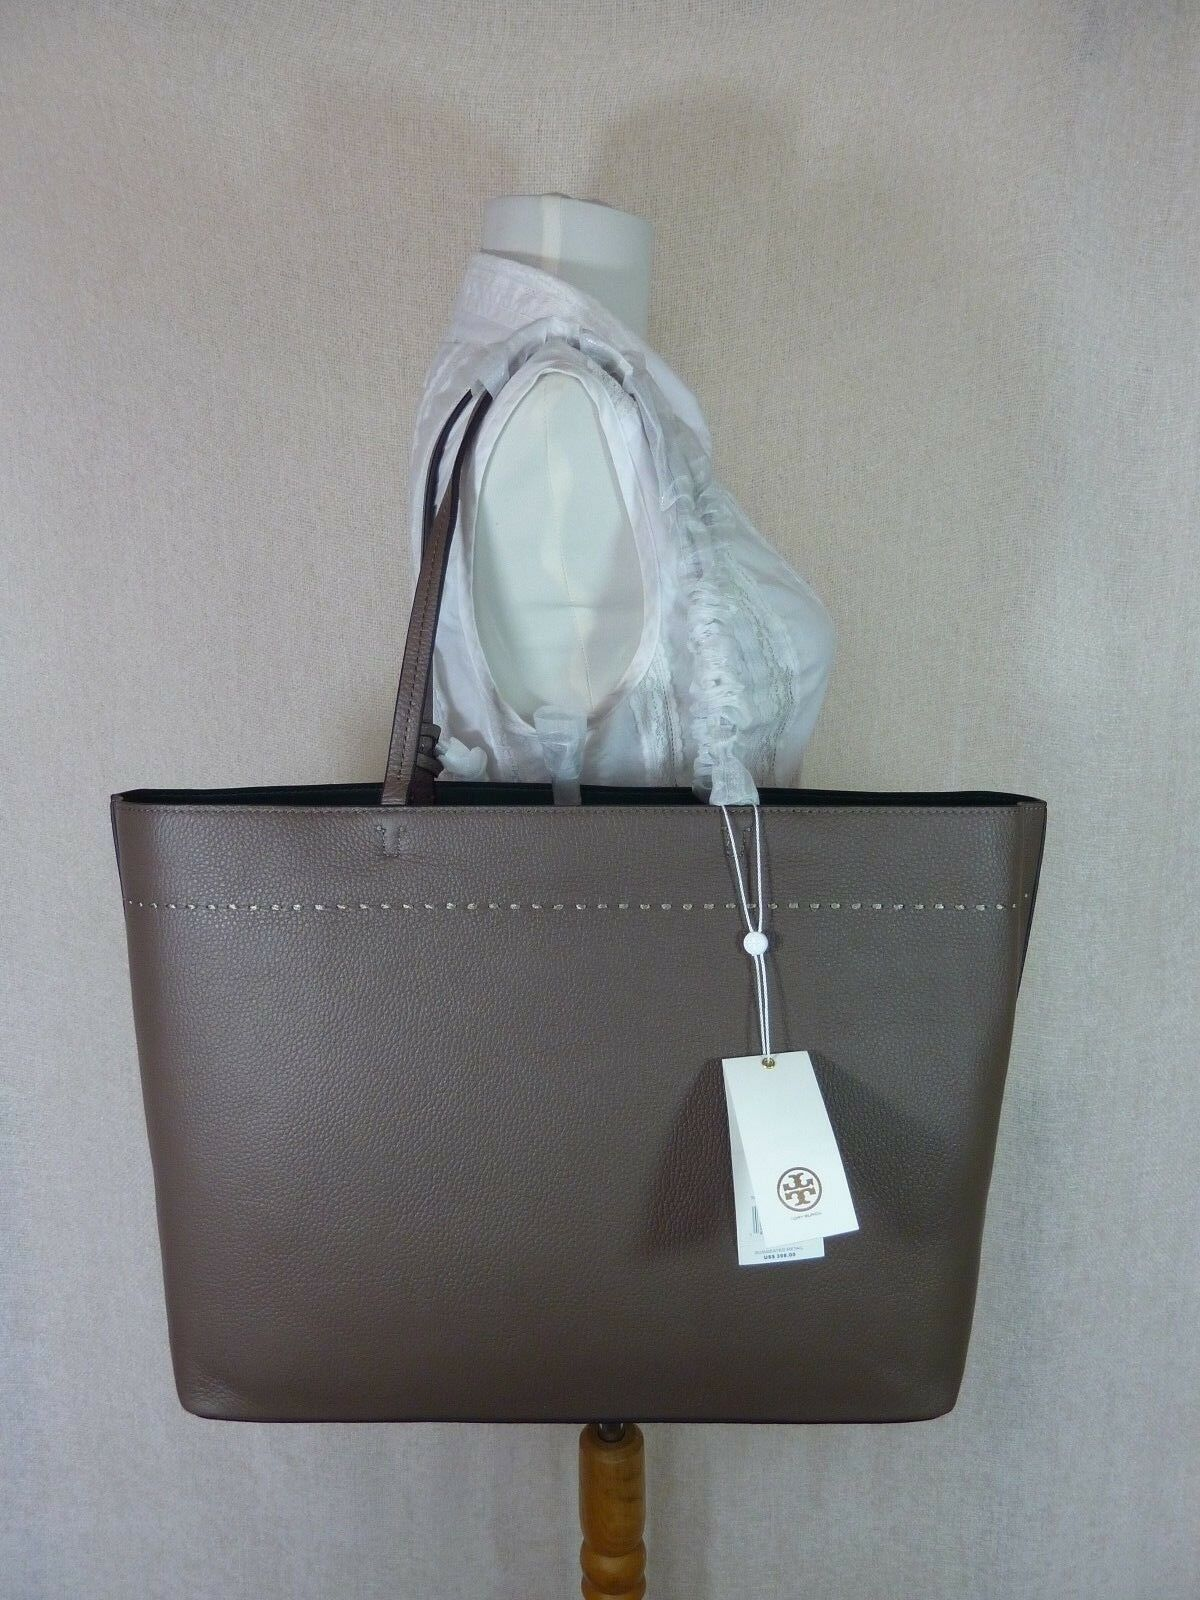 NWT Tory Burch Silver Maple/Malachite Leather McGraw Tote Bag $398 image 4